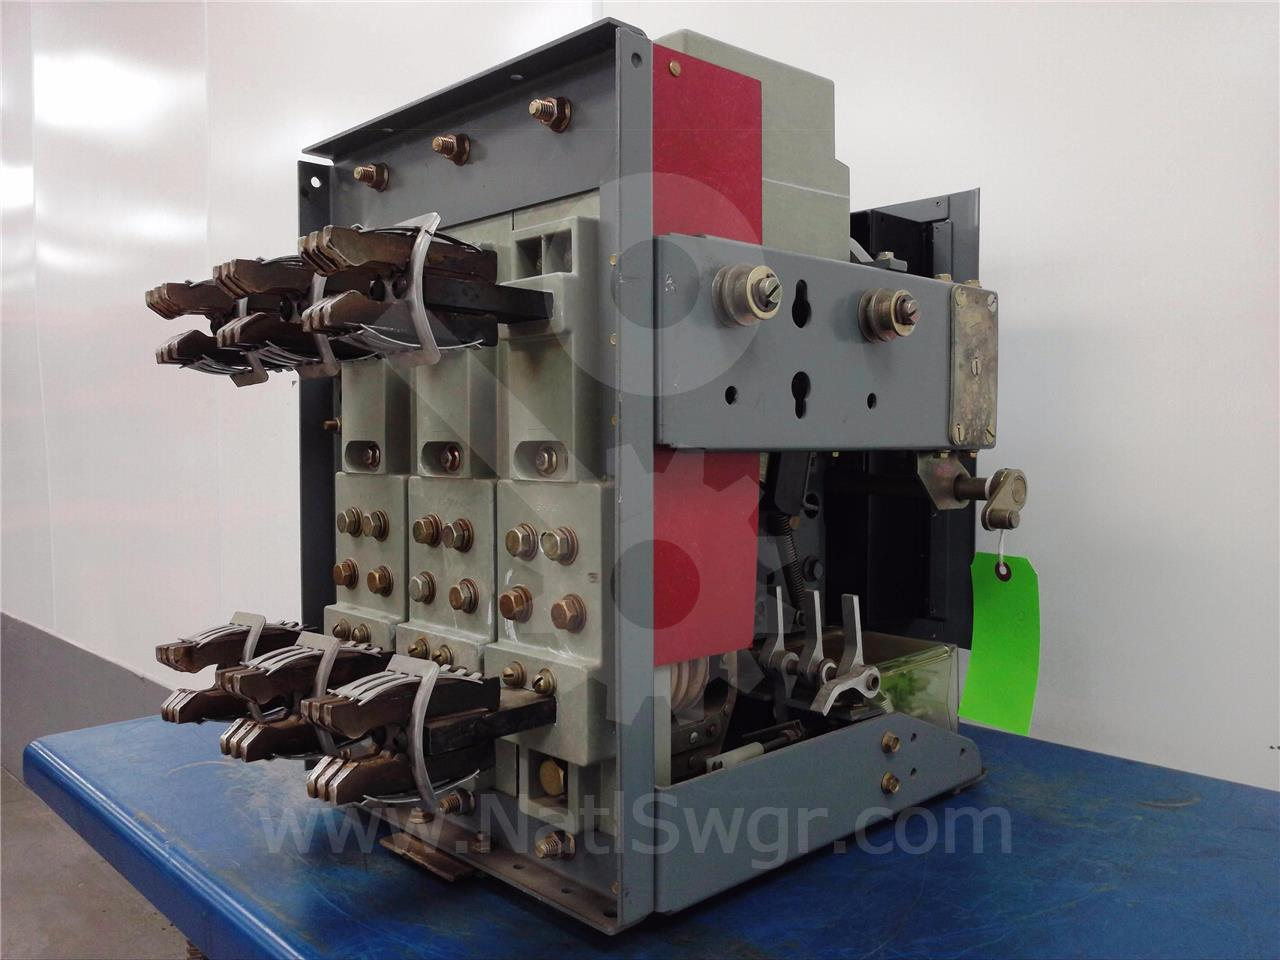 Federal Pacific Electrical Breakers Catalog Ask Answer Wiring Mpd2200 Murray Circuit Breaker New Used And Obsolete Pion 600a Fp 25 Mo Do Box Replacement